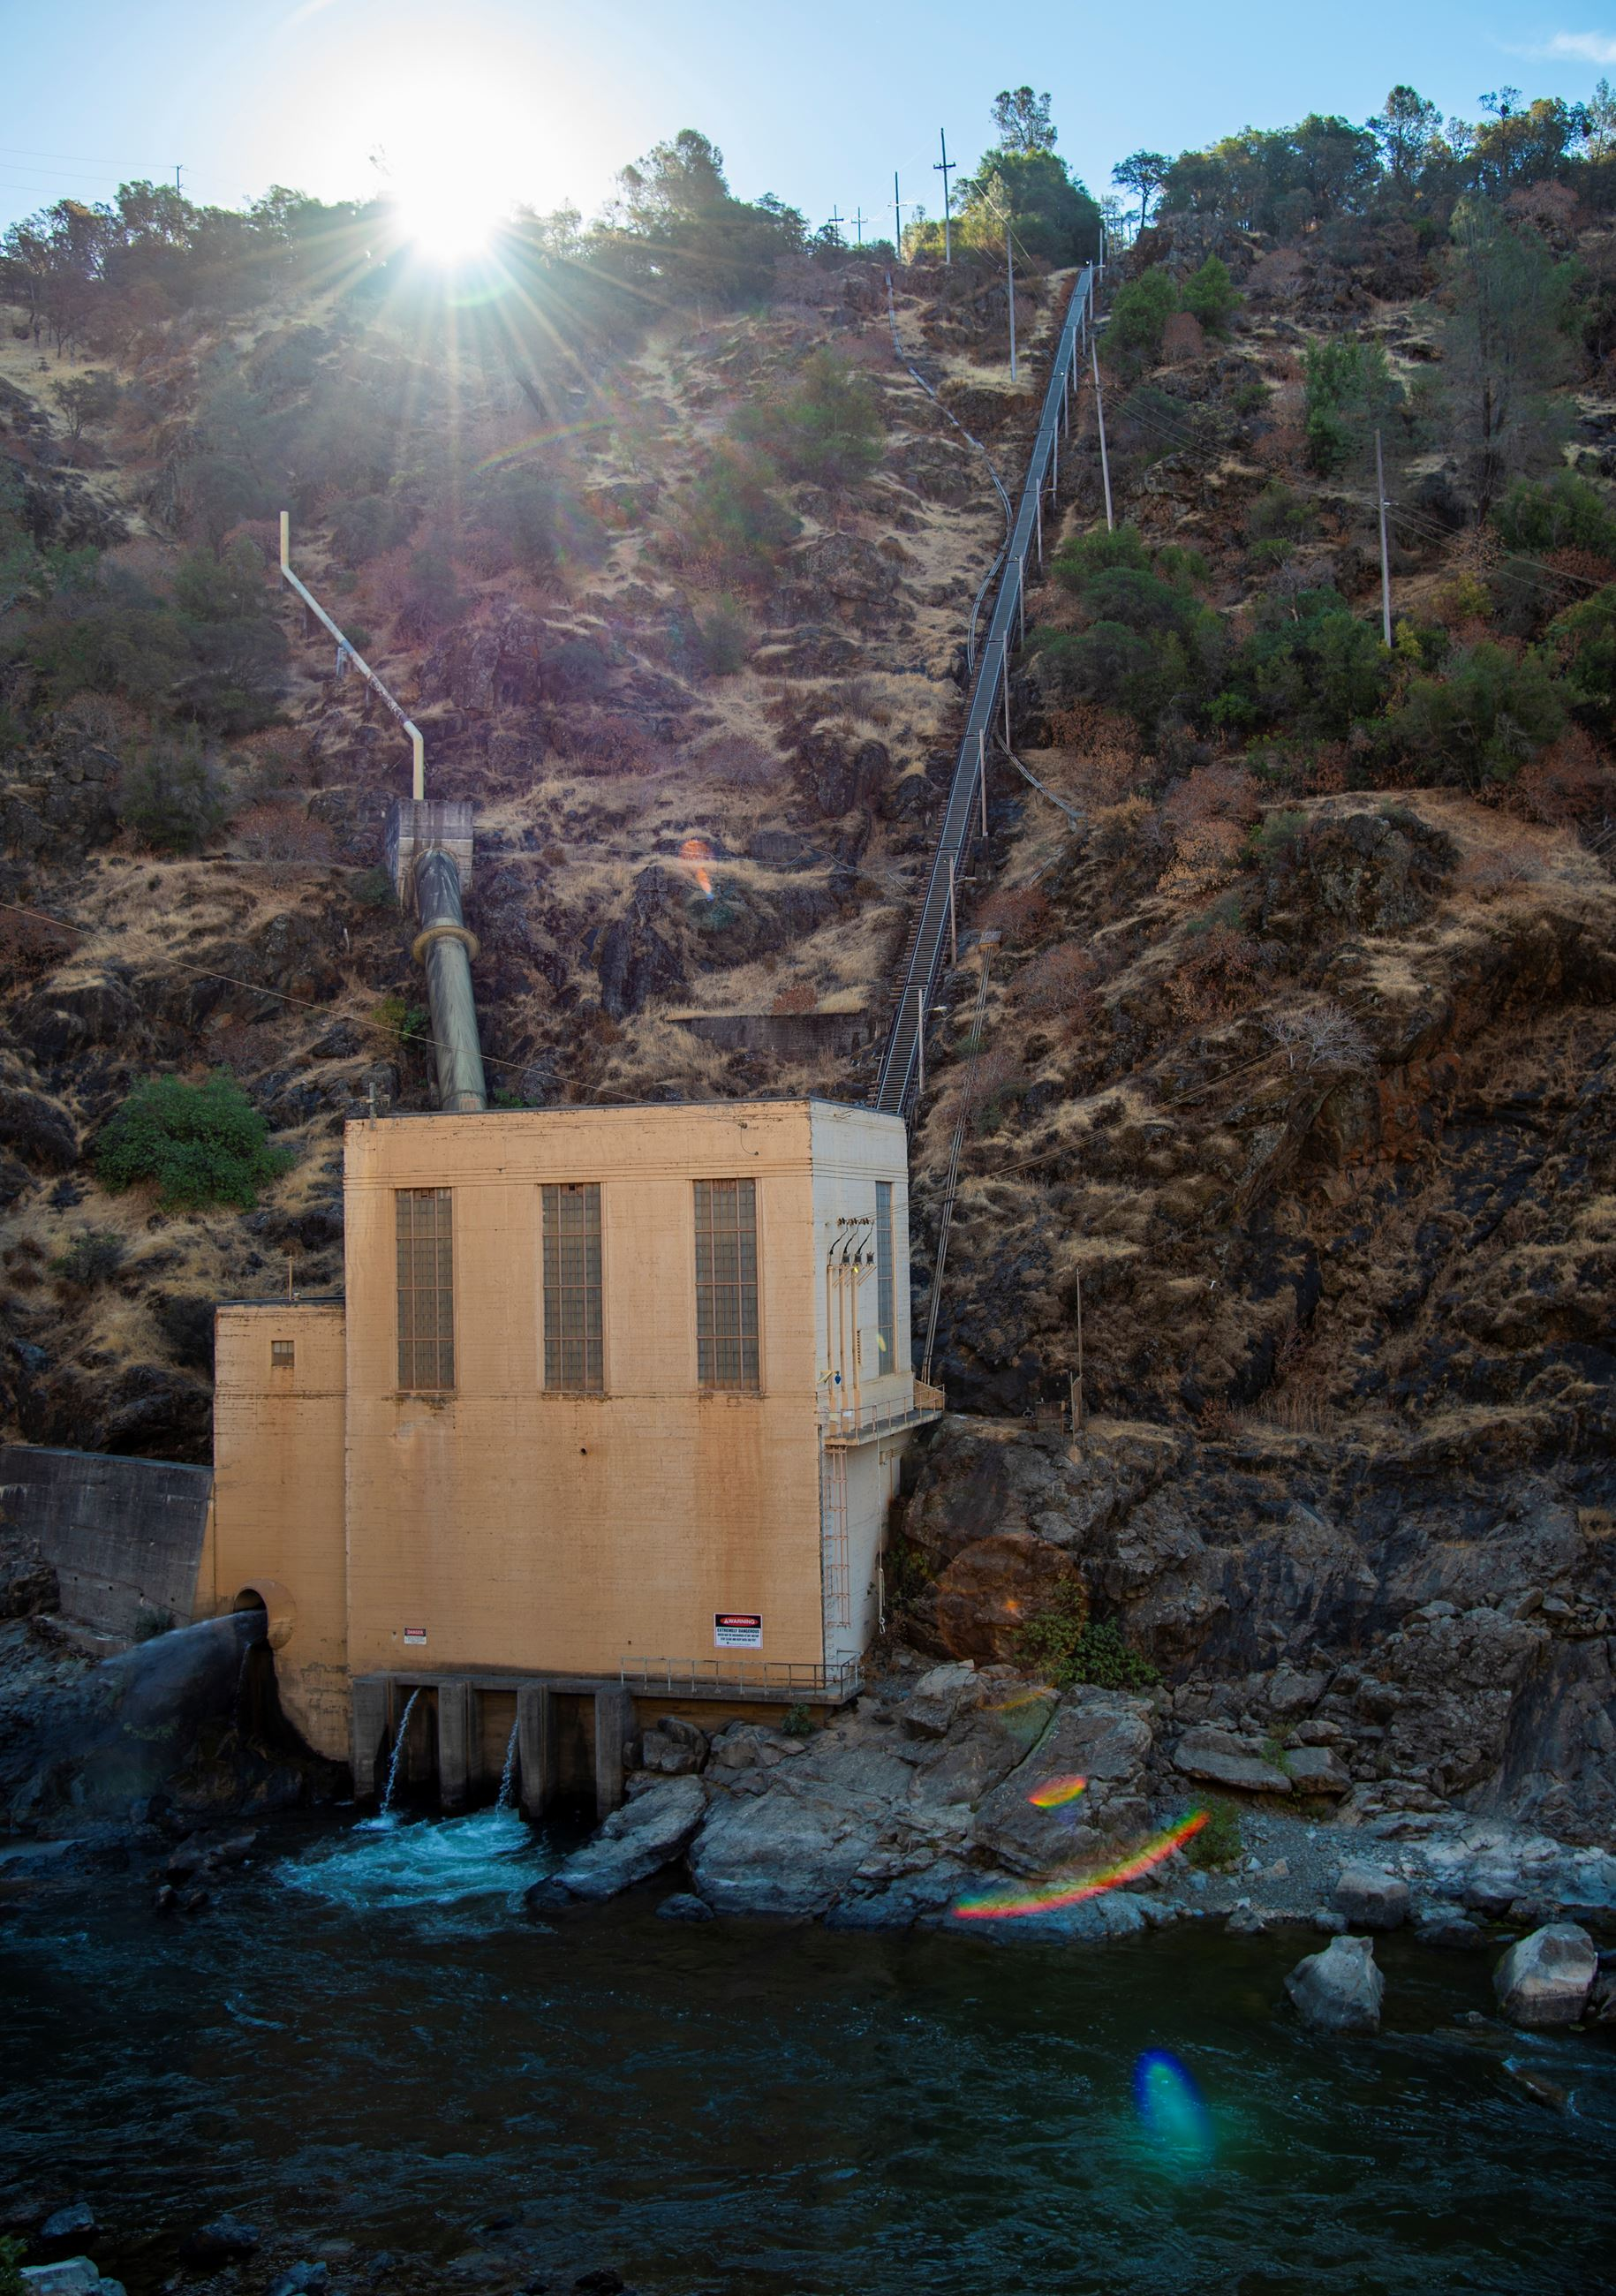 Narrows 1 Hydroelectric facility on the lower Yuba River